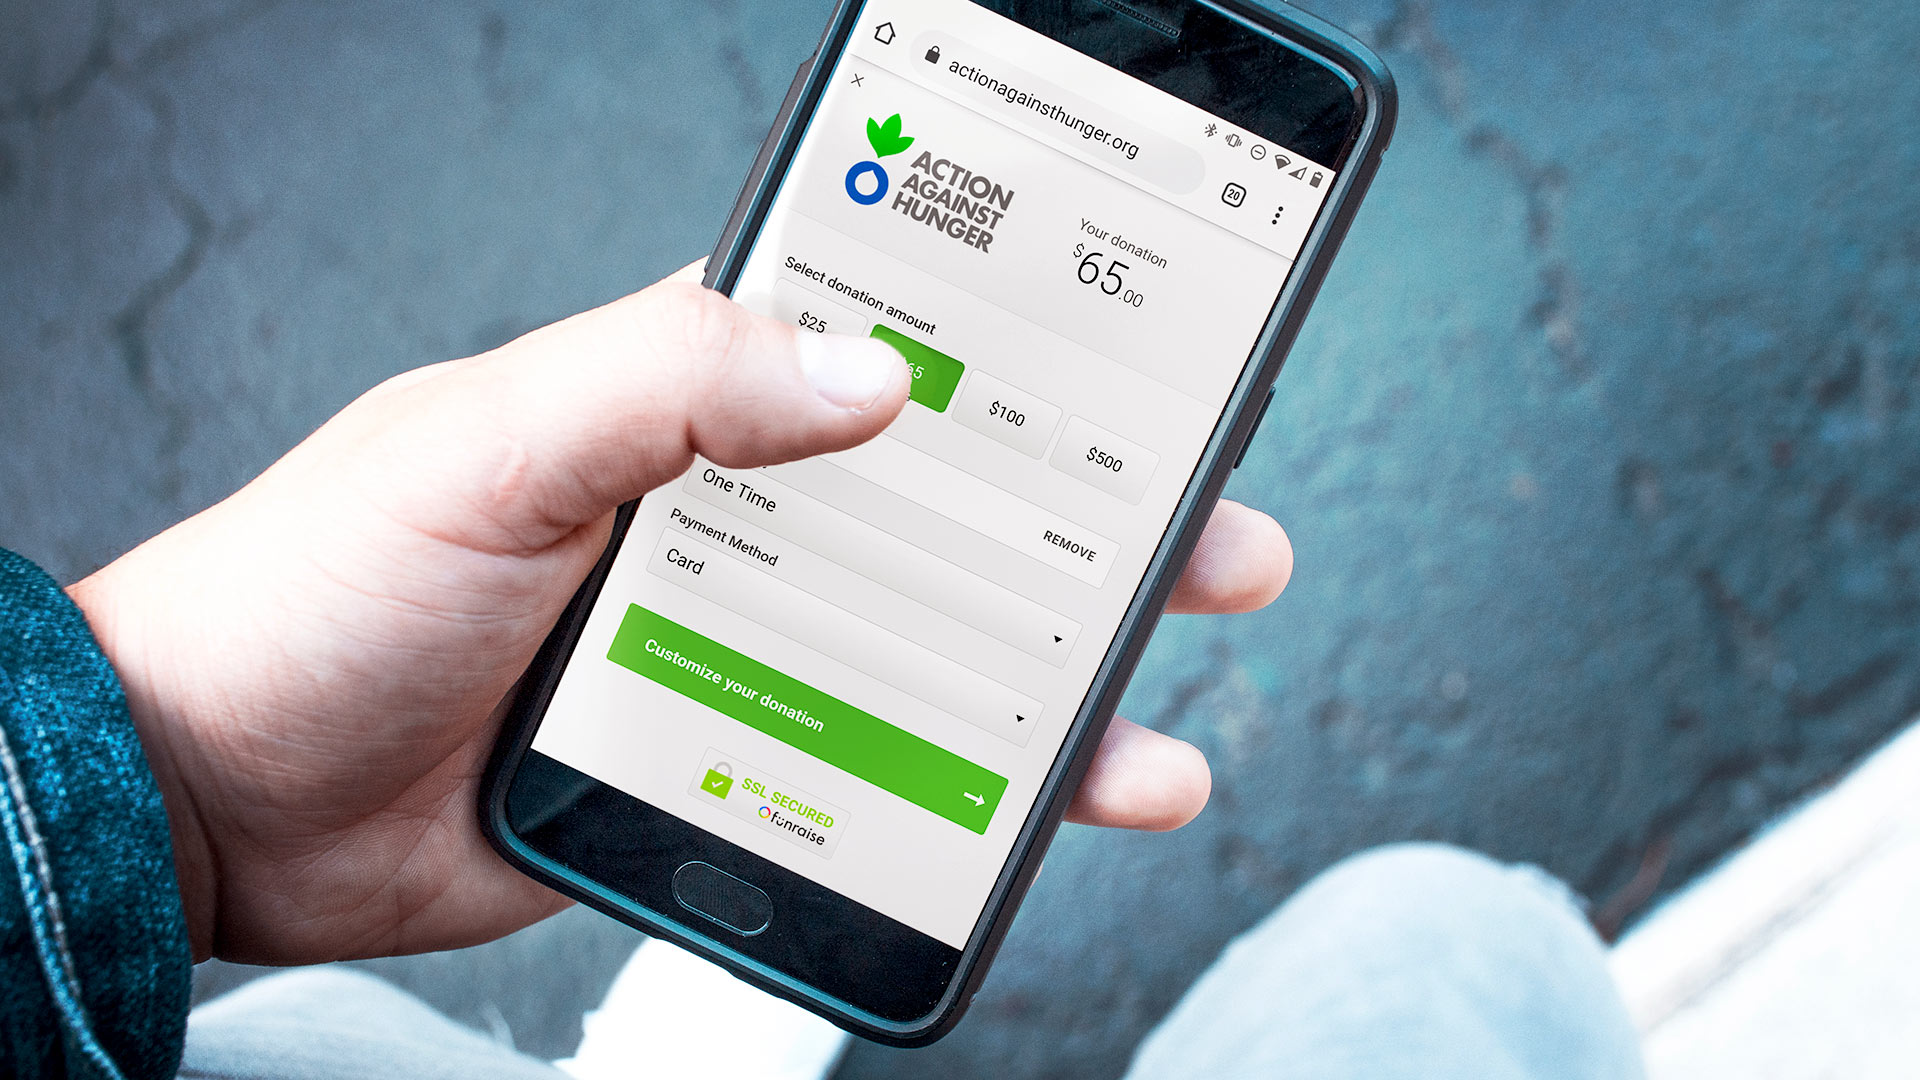 Action Against Hunger's Funraise Donation Form is displayed on a phone in someone's hand. The person is clicking on a button to donate $65, and appears to be standing outdoors, donating on the go.